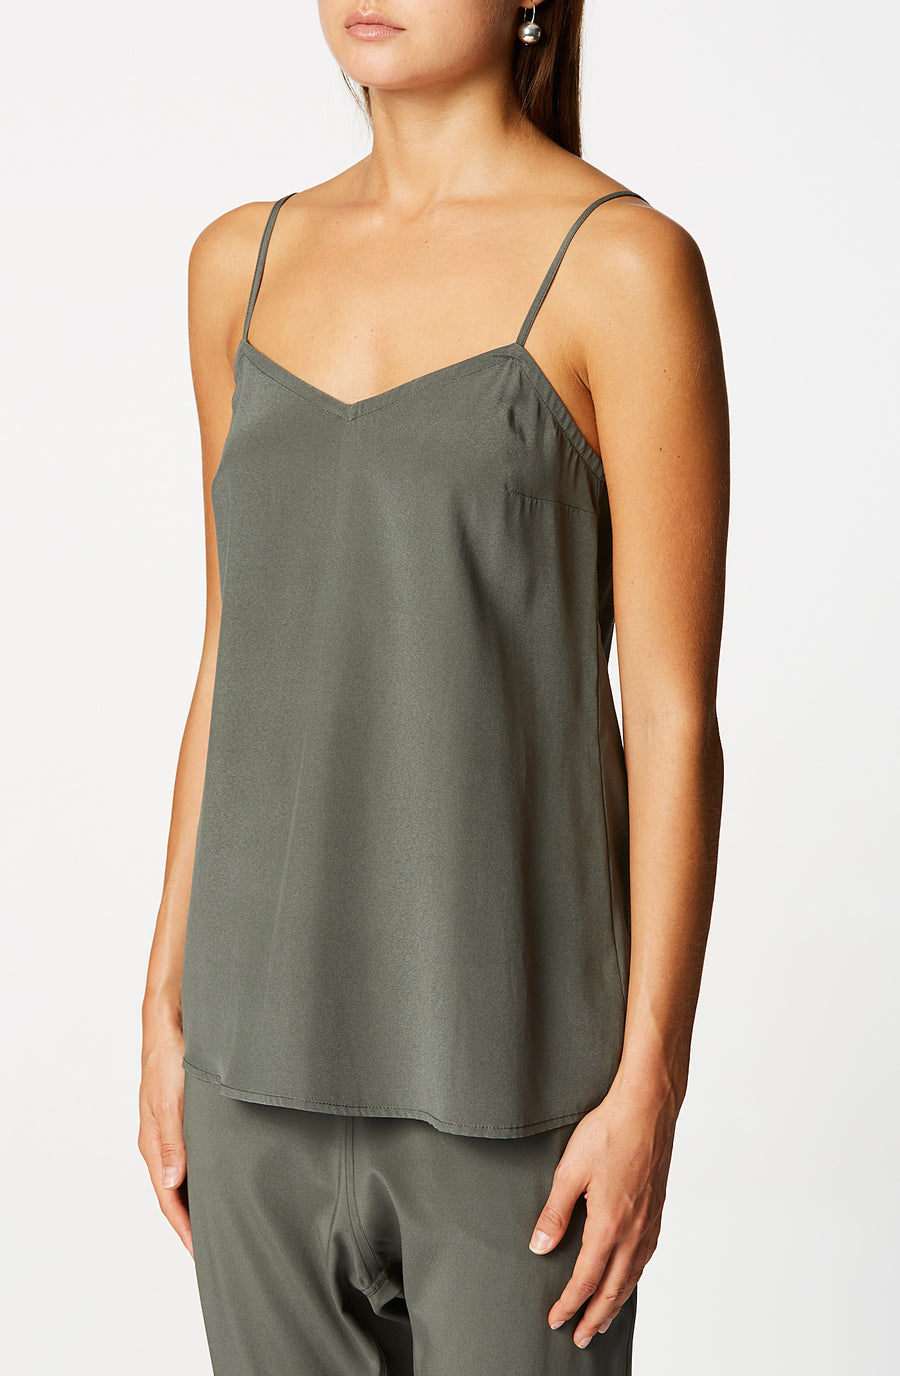 SHOESTRING CAMISOLE, loose fit and features a v-neckline, shoestring shoulder straps, Color Jungle